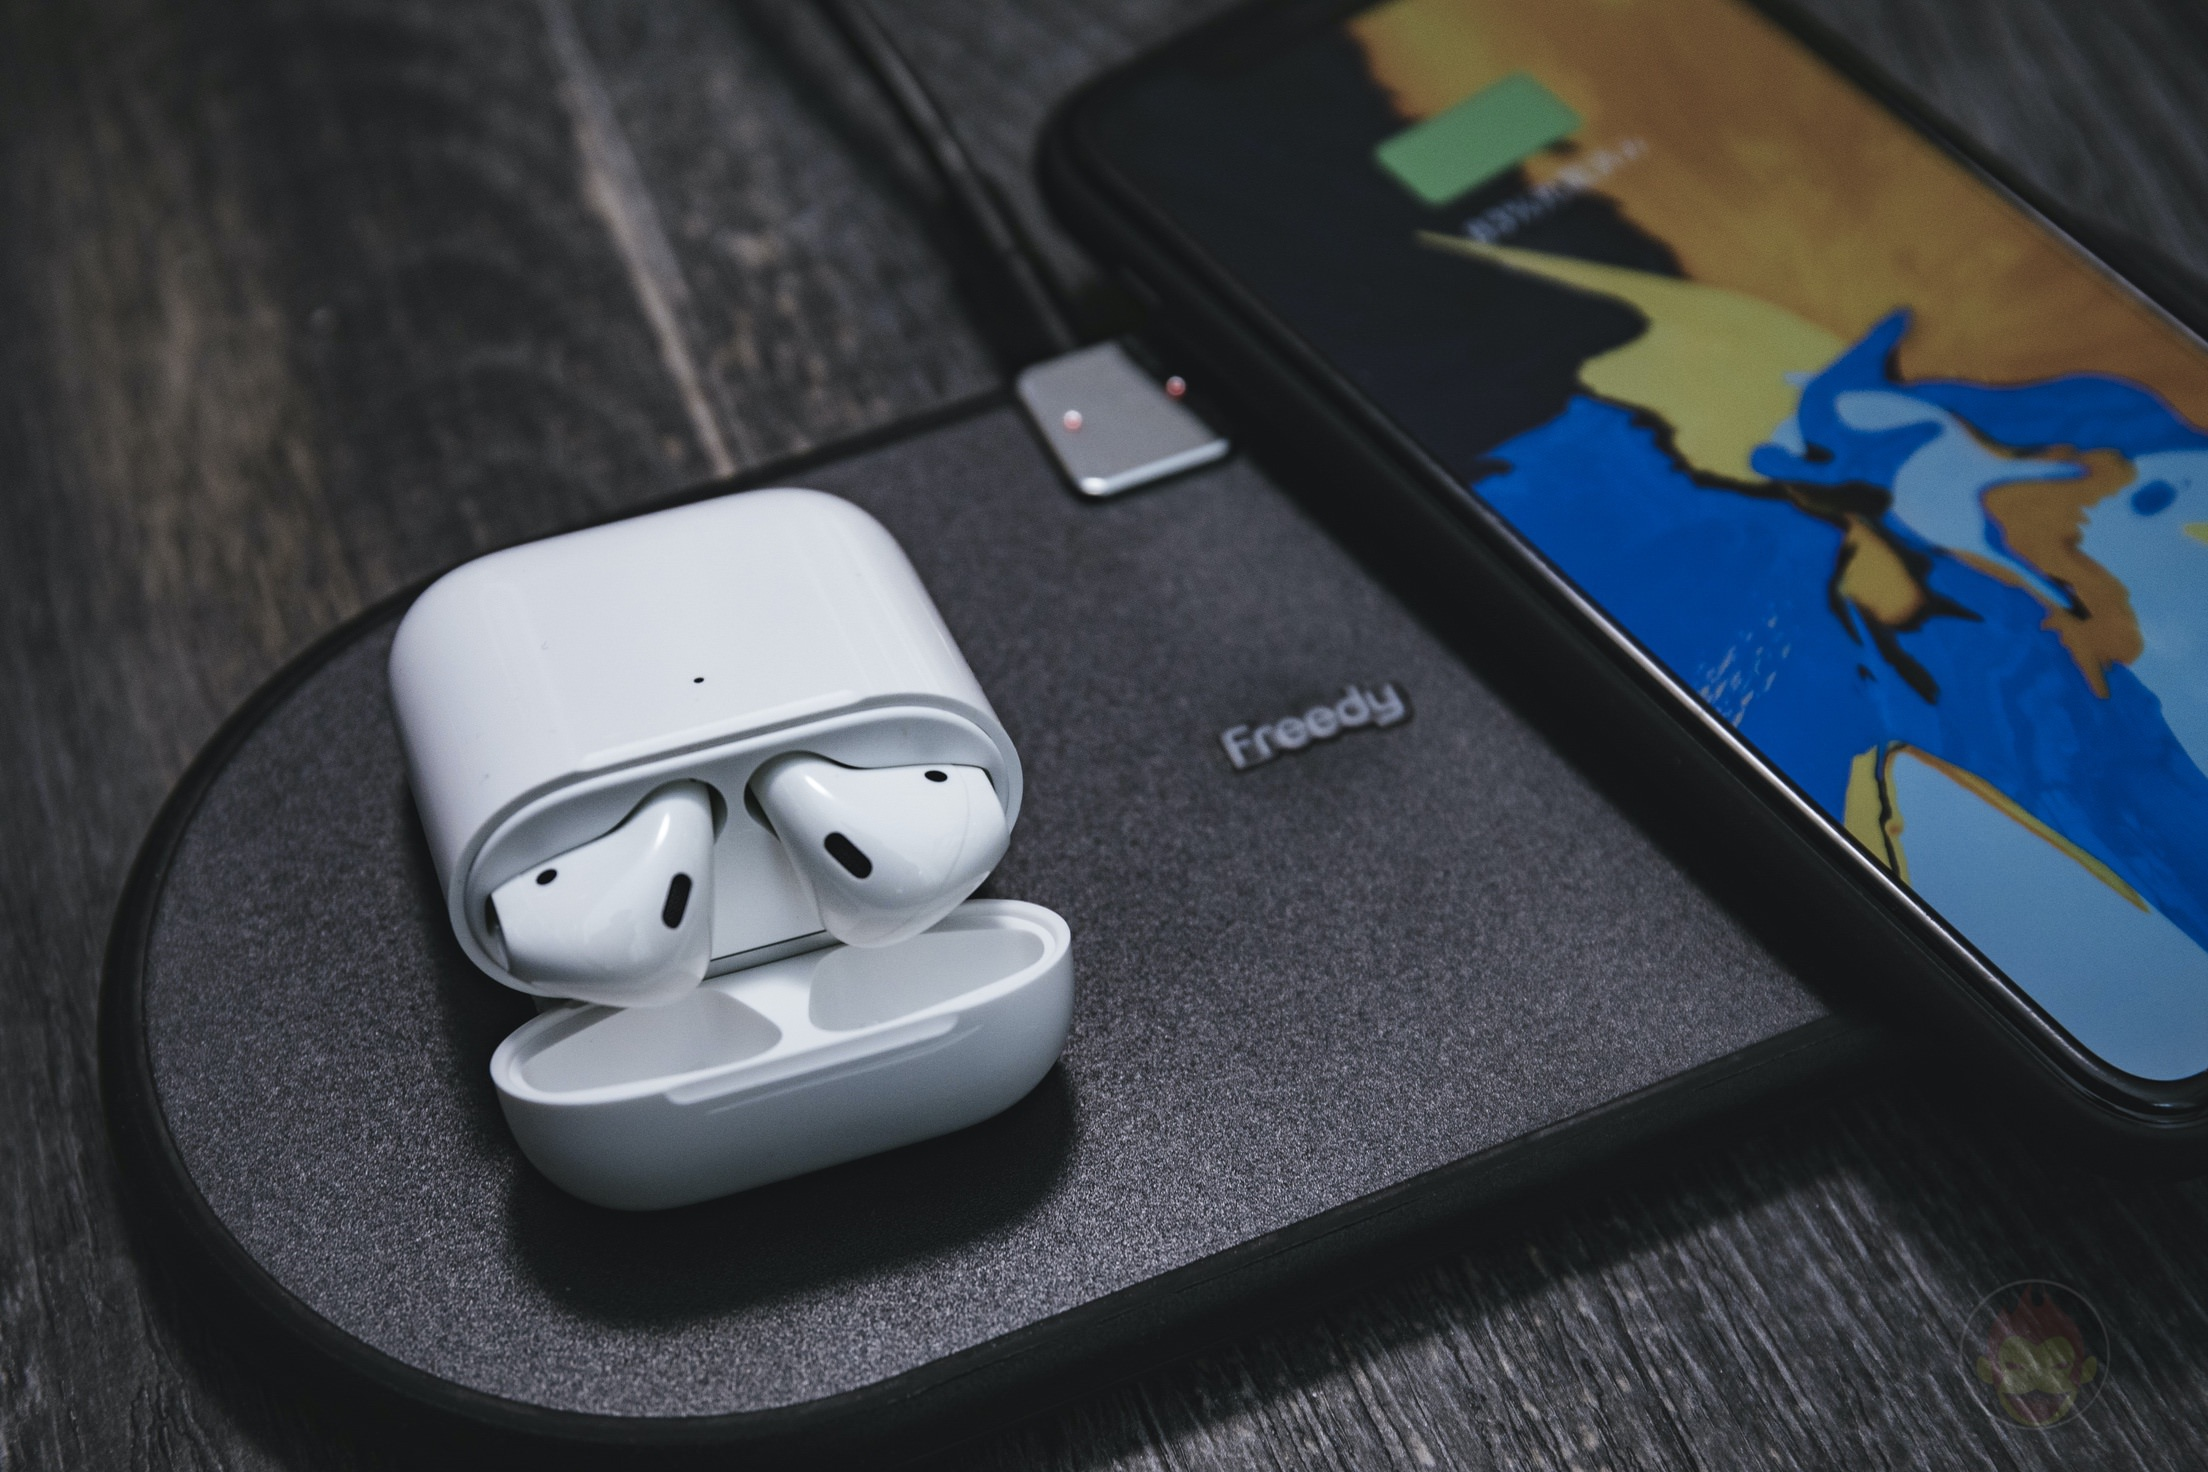 AirPods-2nd-Generation-2019-Review-27.jpg